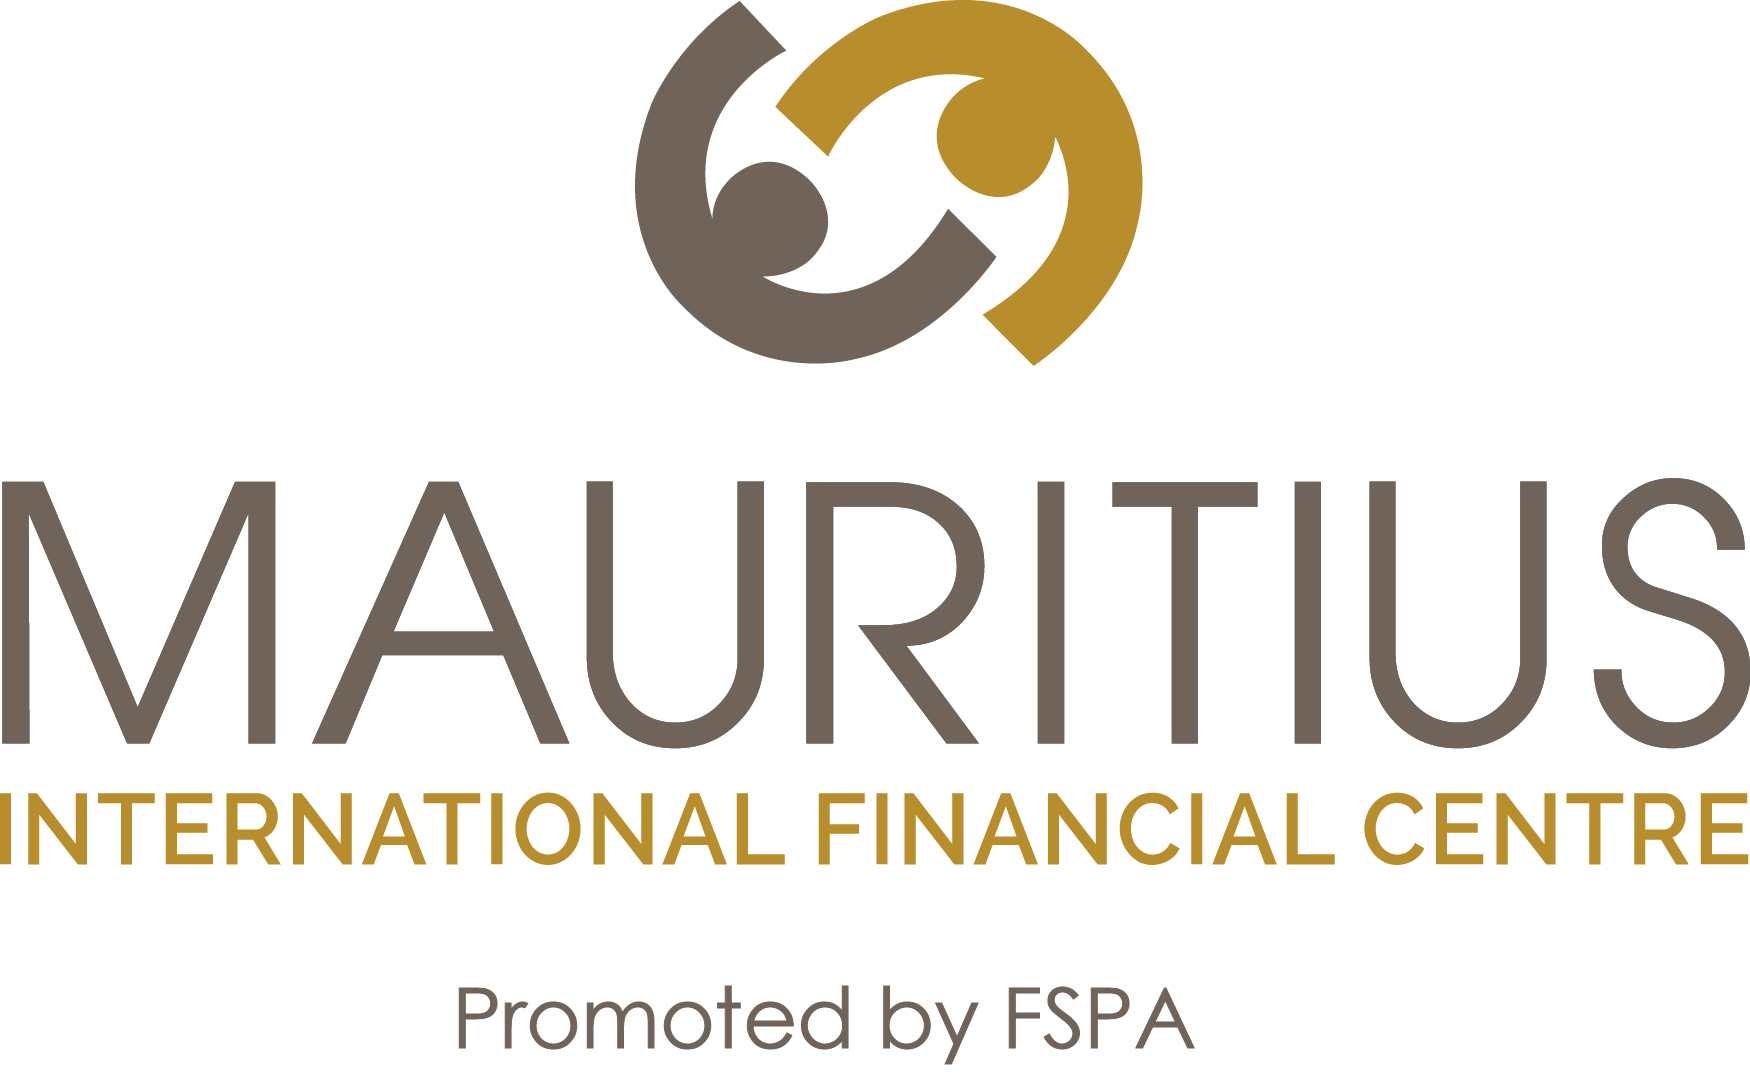 Mauritius International Financial Centre, Lufthansa Magazin